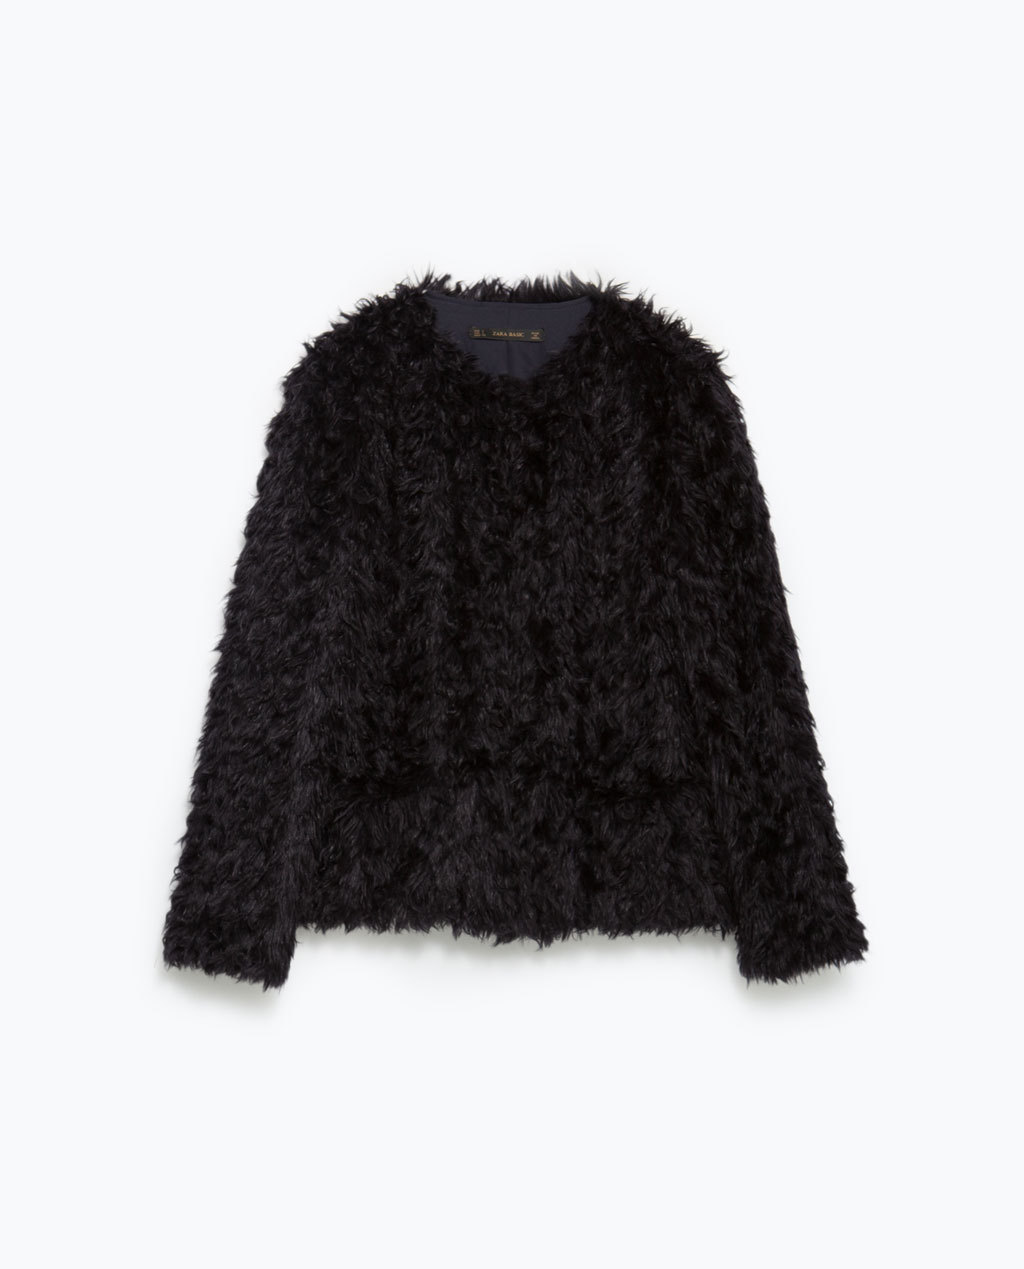 Faux Fur Jacket - pattern: plain; collar: round collar/collarless; style: boxy; predominant colour: black; occasions: casual, evening, creative work; length: standard; fit: straight cut (boxy); fibres: acrylic - mix; sleeve length: long sleeve; sleeve style: standard; texture group: fur; collar break: high/illusion of break when open; pattern type: fabric; season: a/w 2015